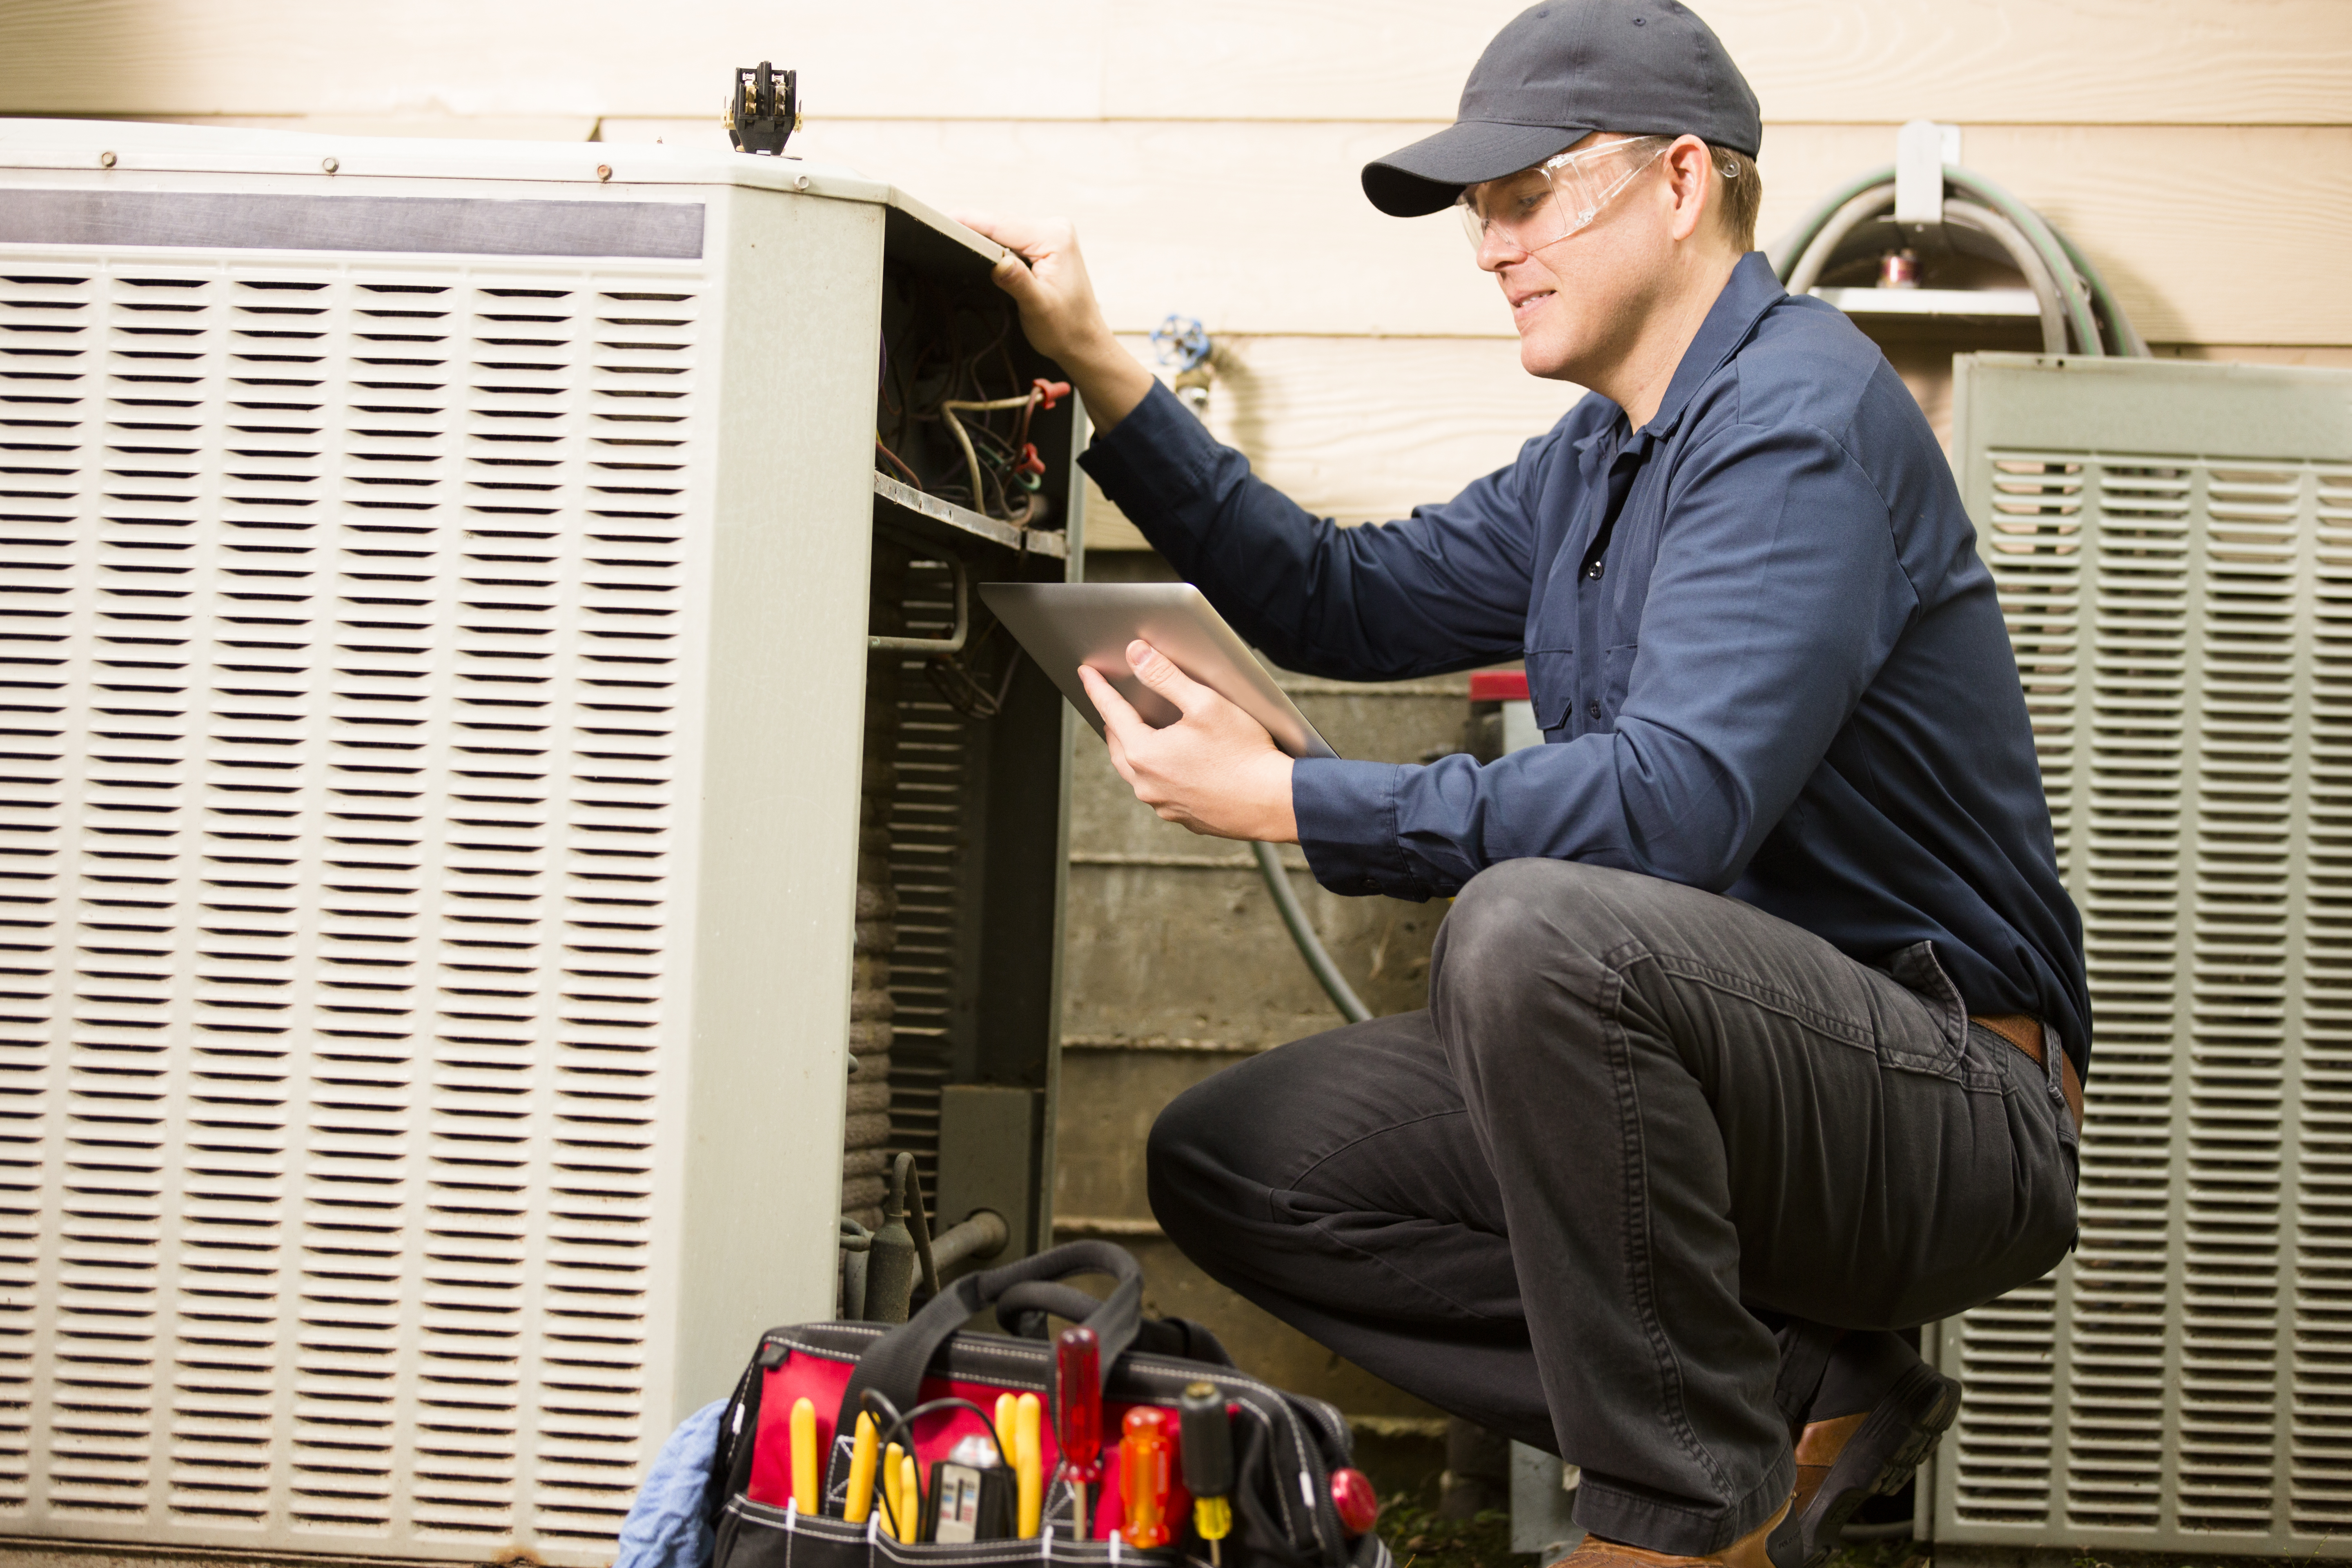 How to Troubleshoot Swamp Cooler Problems | Hunker